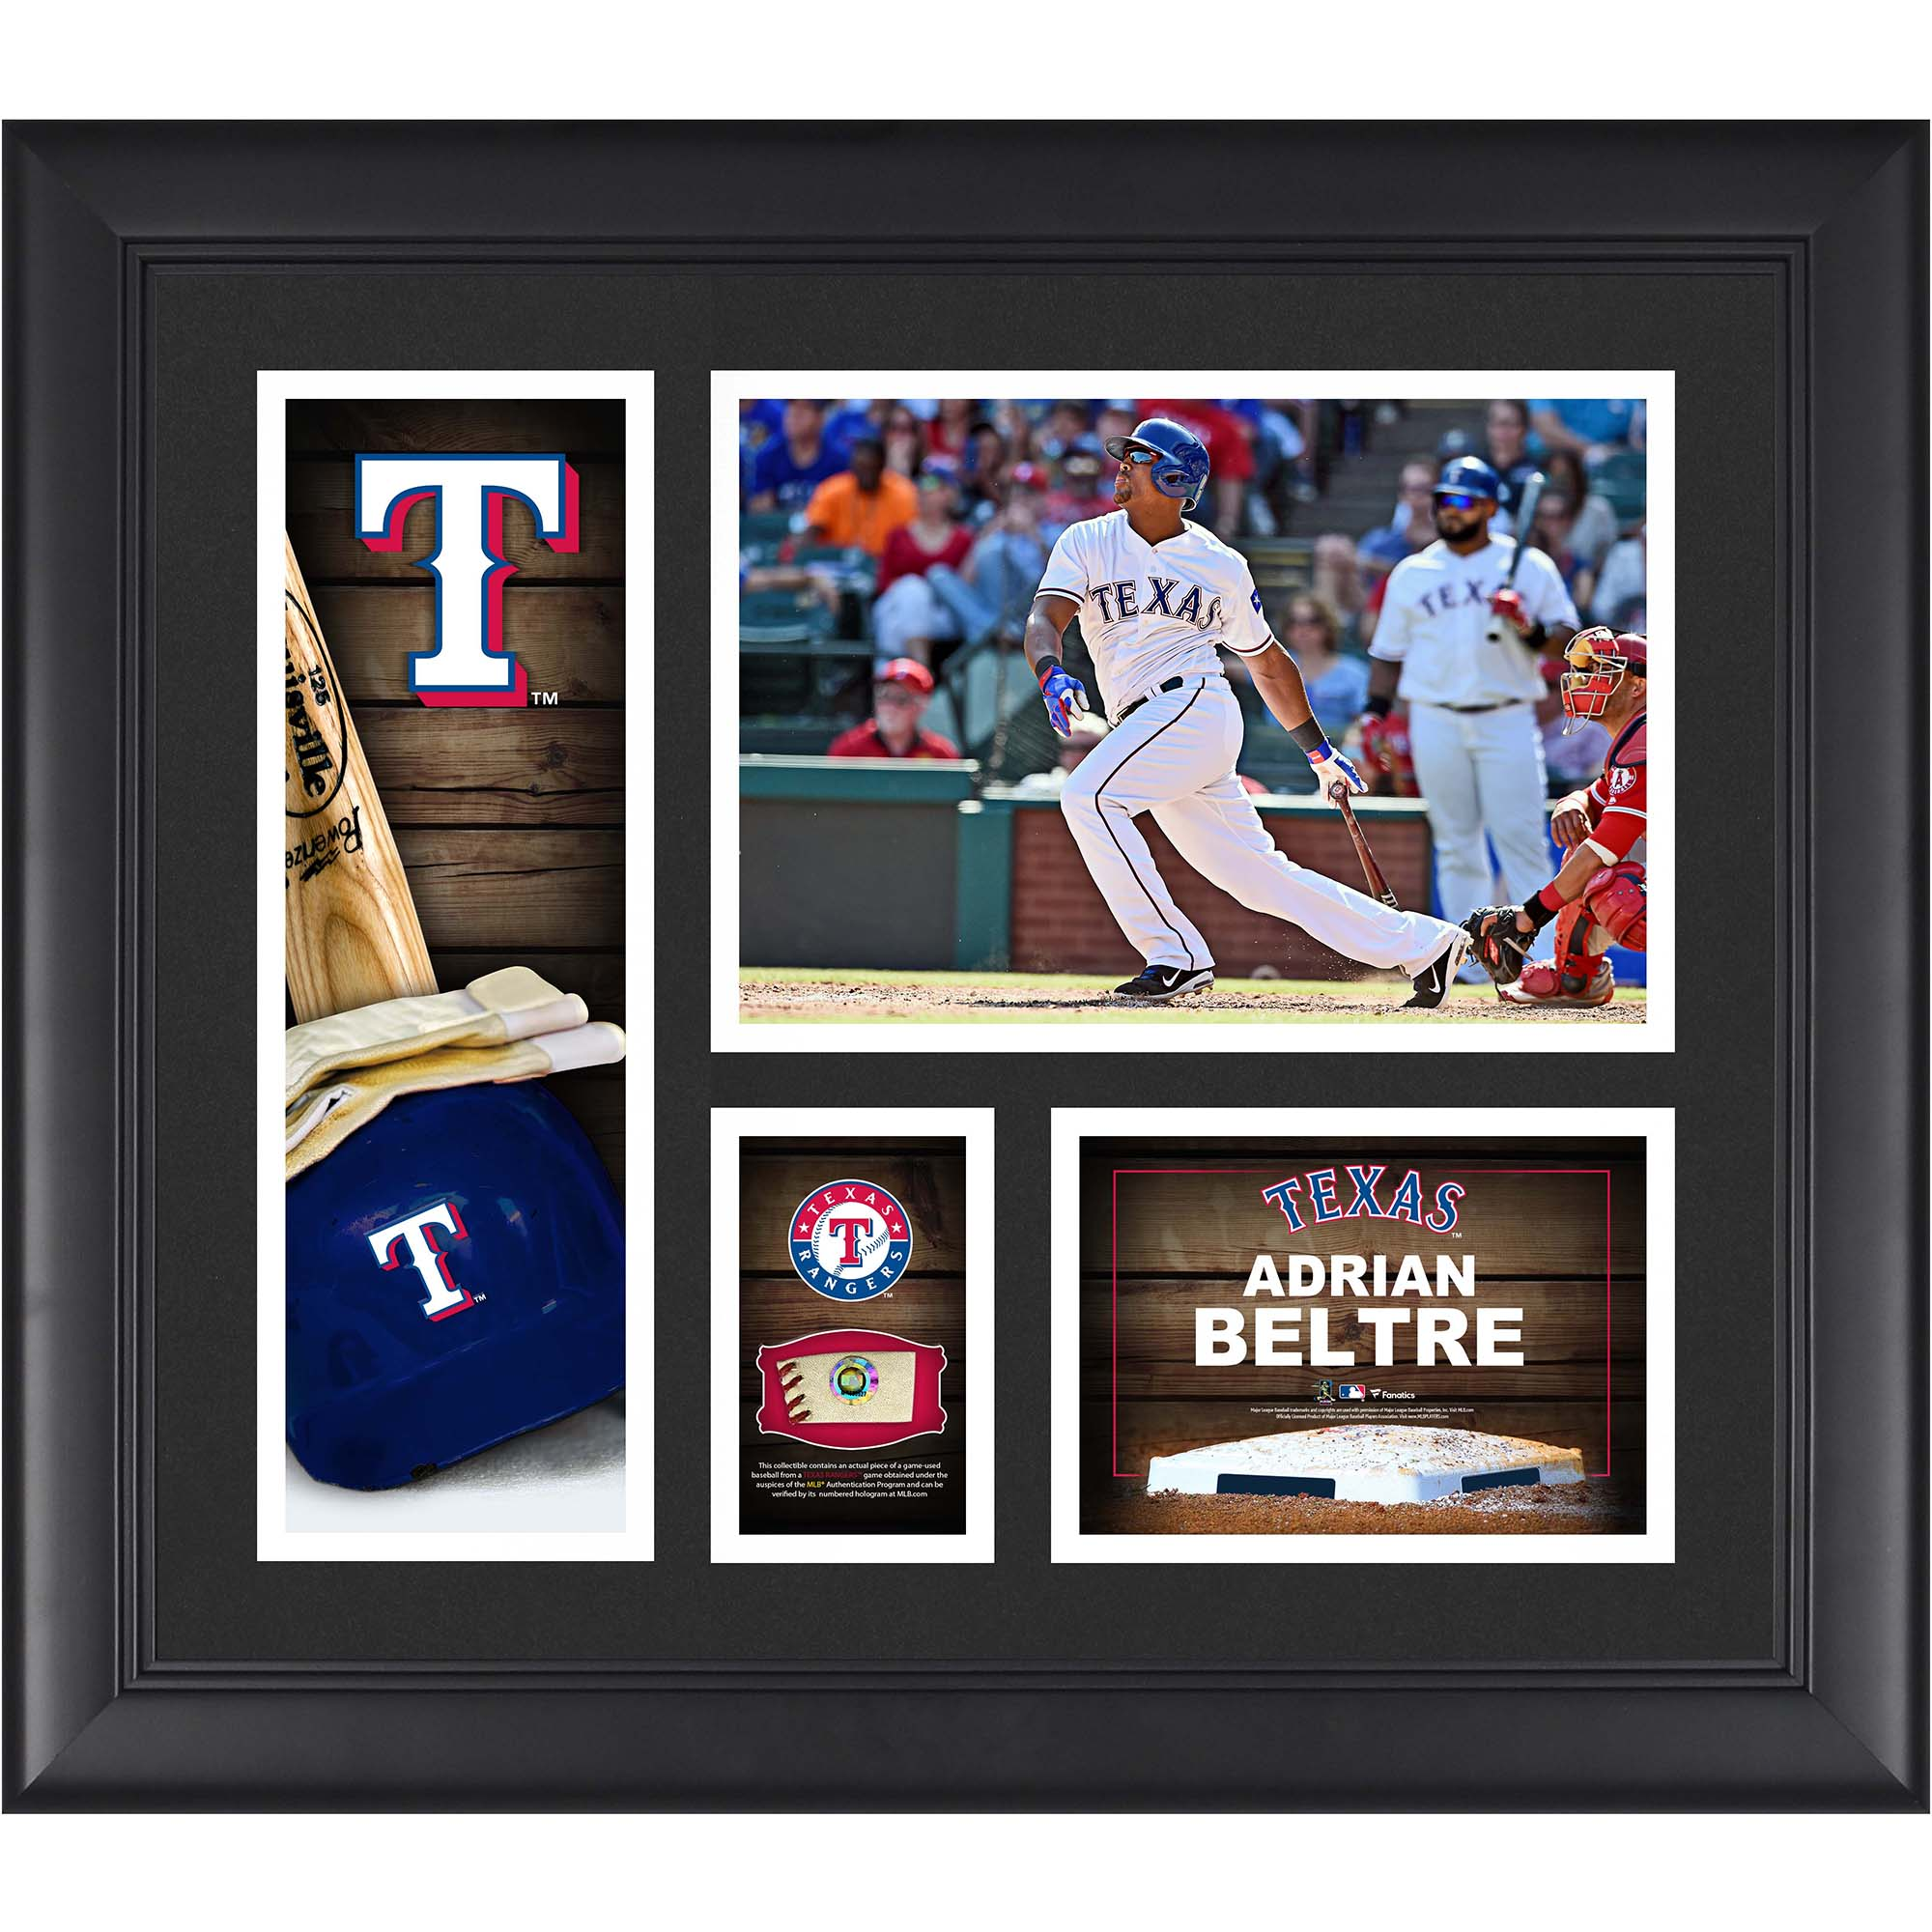 "Adrian Beltre Texas Rangers Framed 15"" x 17"" Player Collage with a Piece of Game-Used Ball"